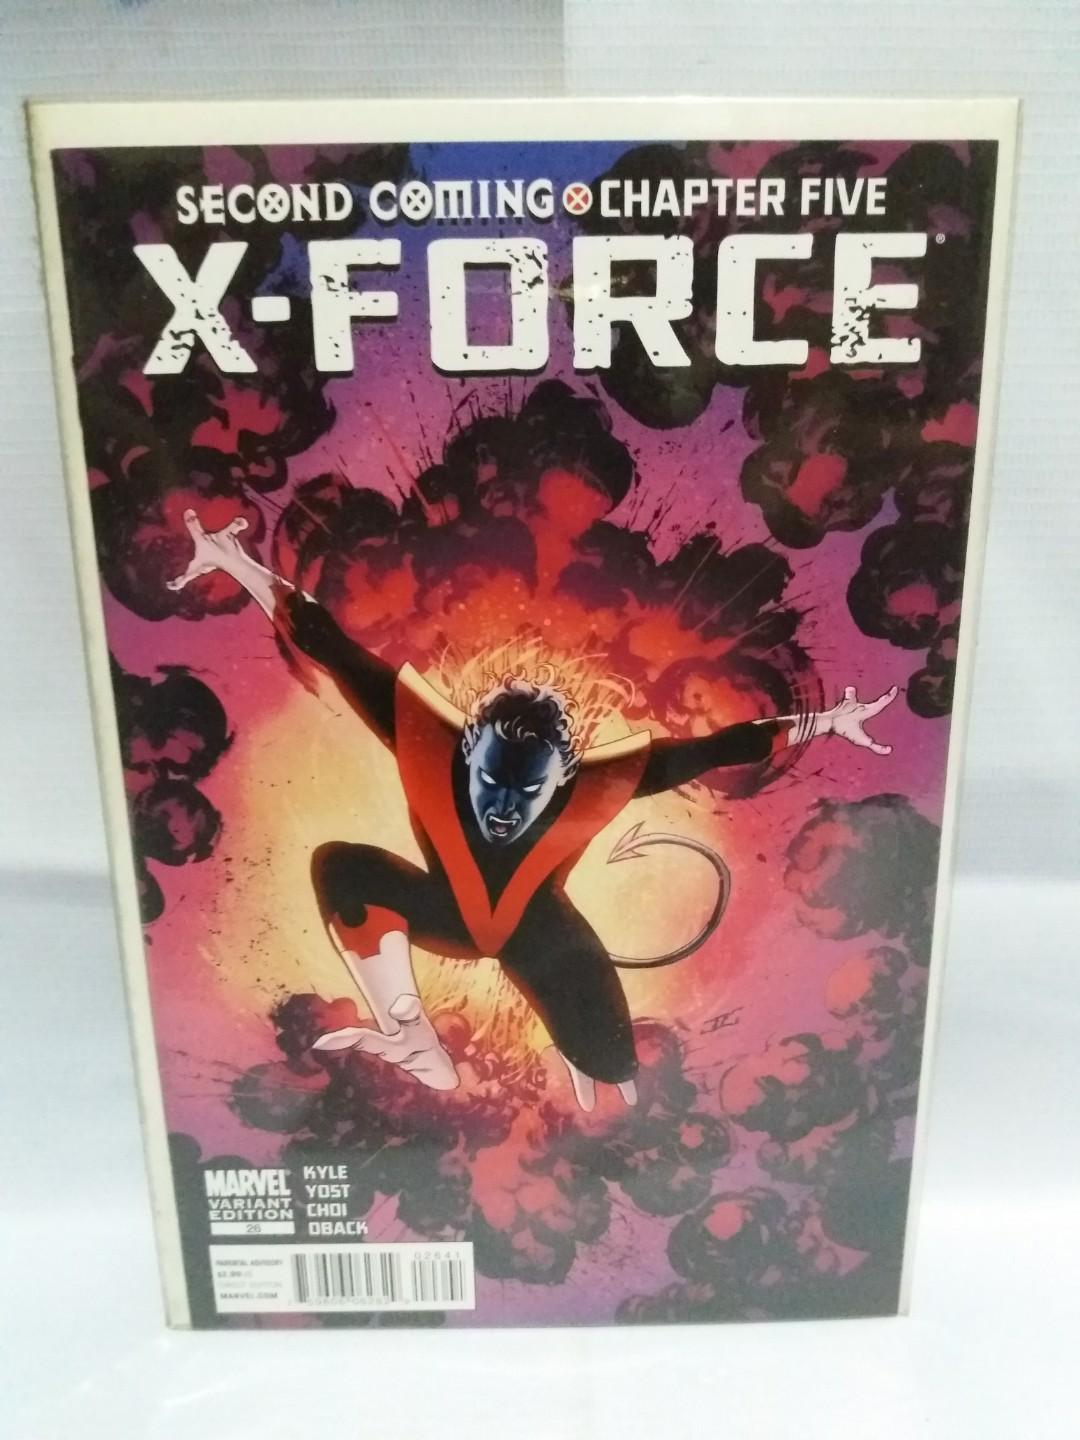 X-Force (3rd Series) #26 (Second Coming Chapter 5) (Nightcrawler Death)